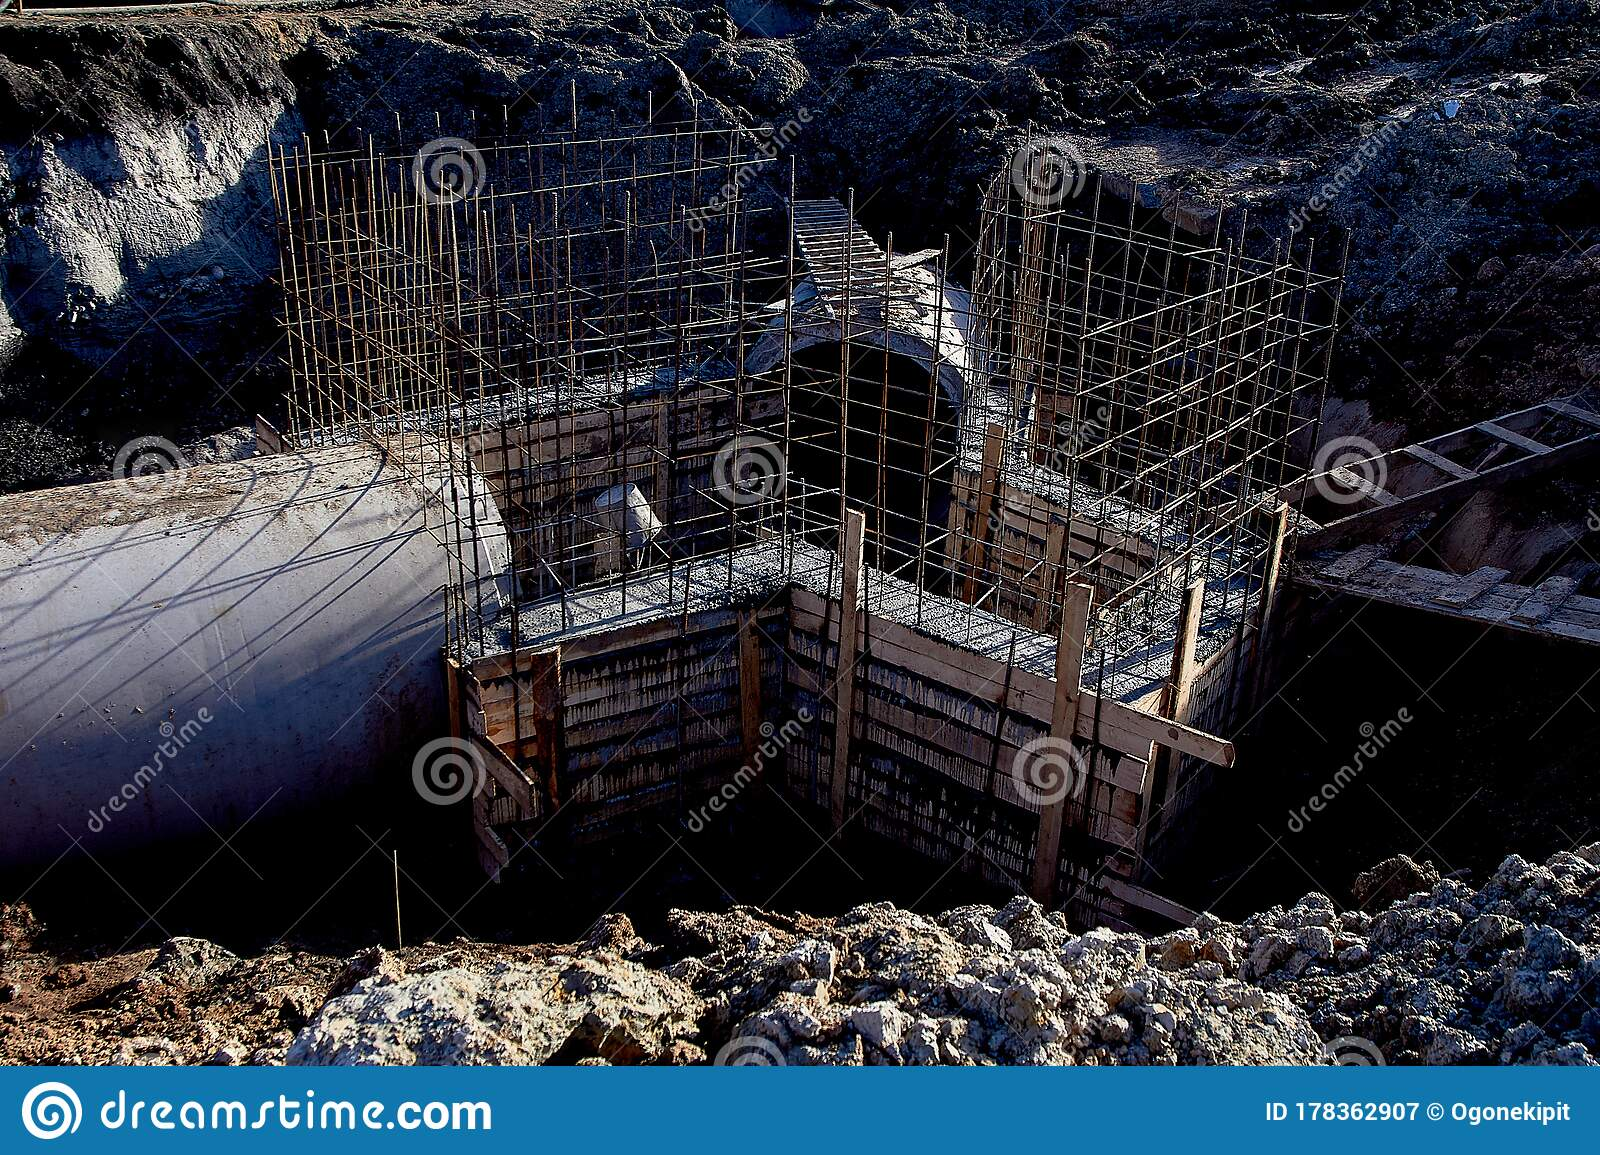 Reinforced Concrete Drainage Pipes Include A Monolithic Chamber Stock Image Image Of Construction Environment 178362907